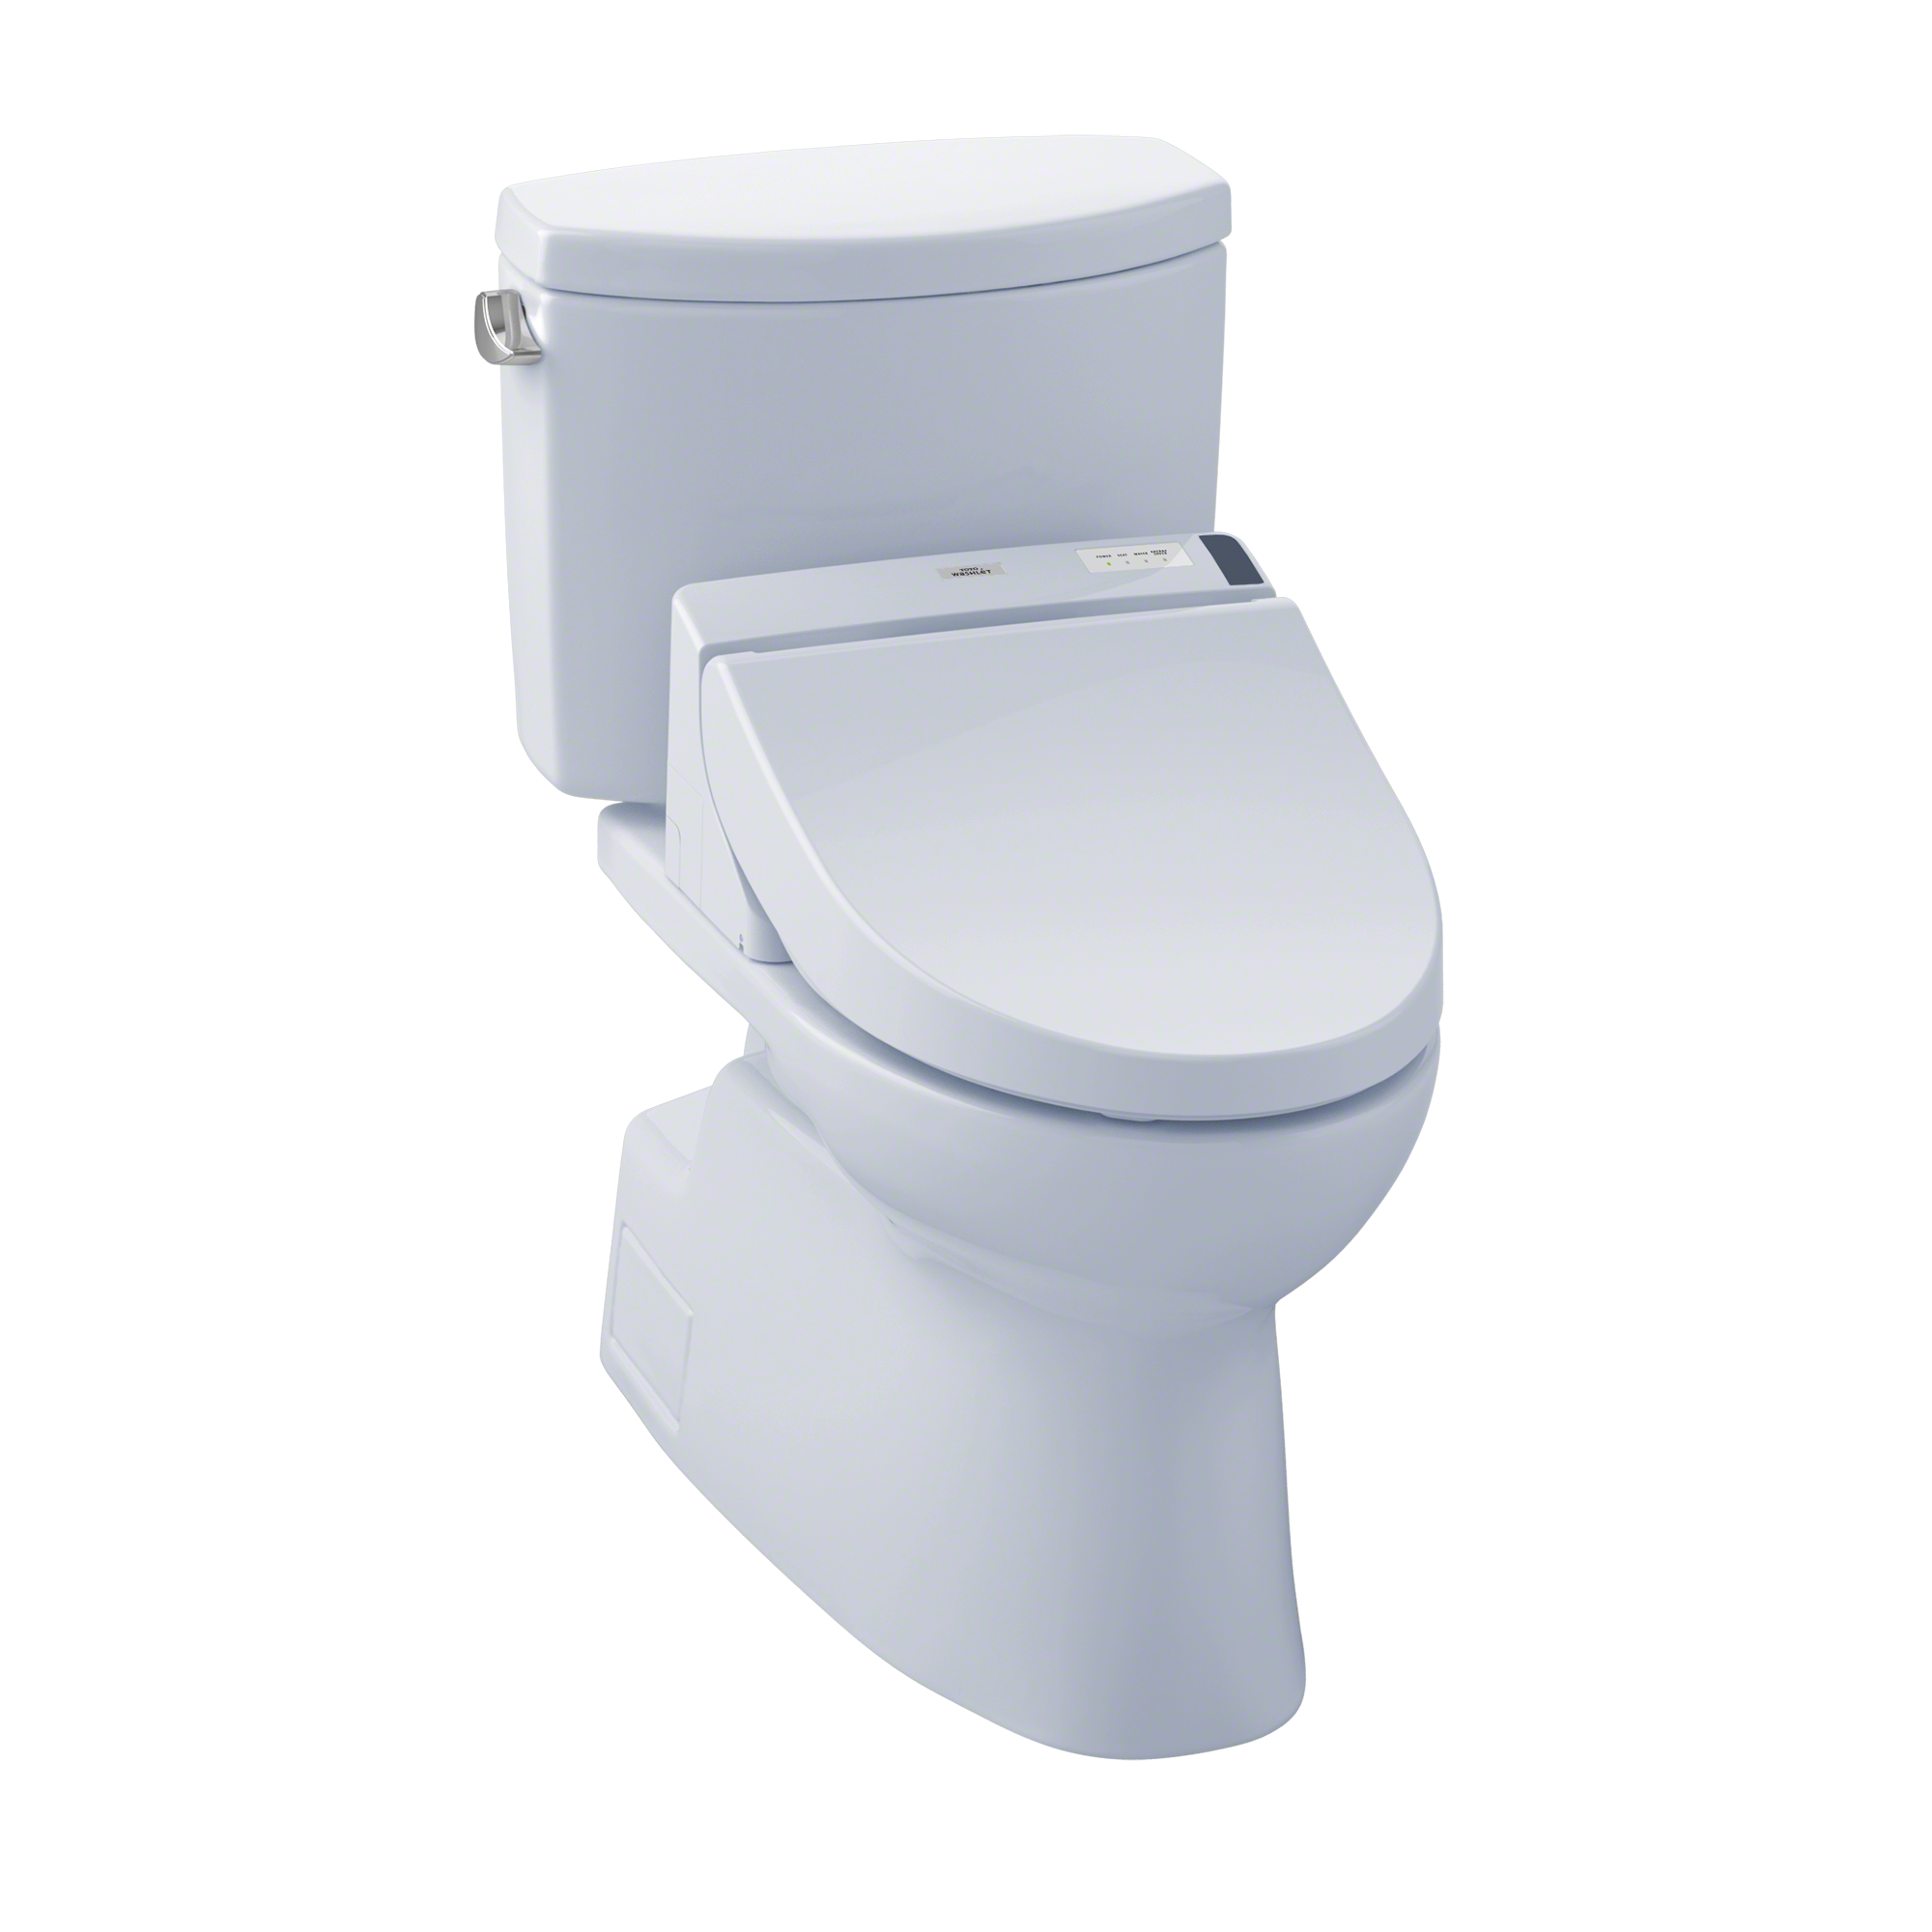 TOTO® Connect+® Kit Vespin® II Two-Piece Elongated 1.28 GPF Toilet and Washlet® C200 Bidet Seat, Cotton White - MW4742044CEFG#01